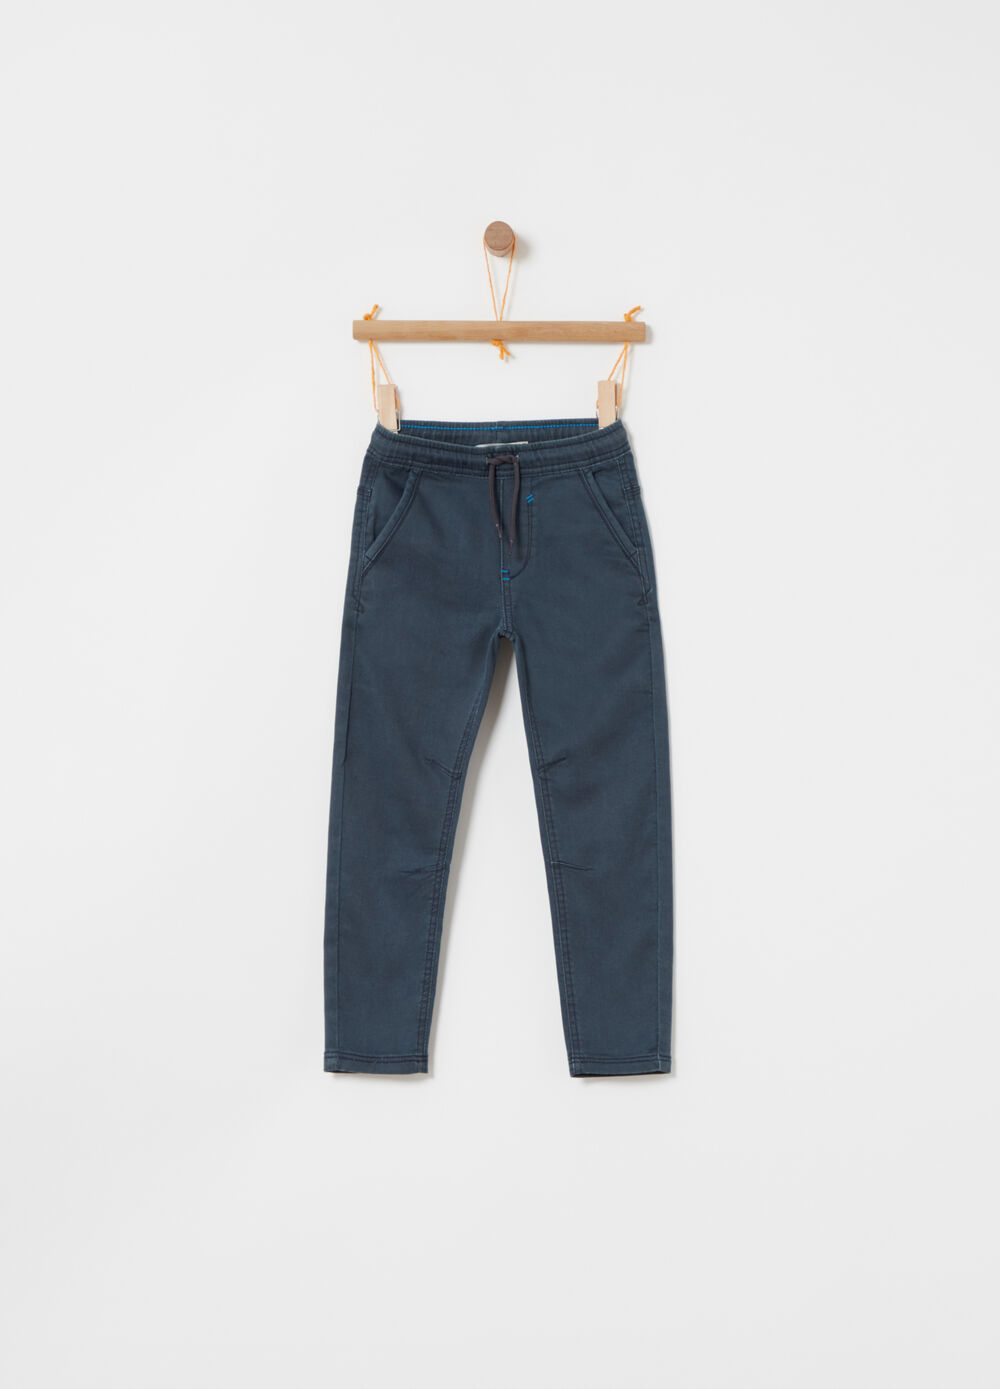 Stretch denim jogger trousers with pockets